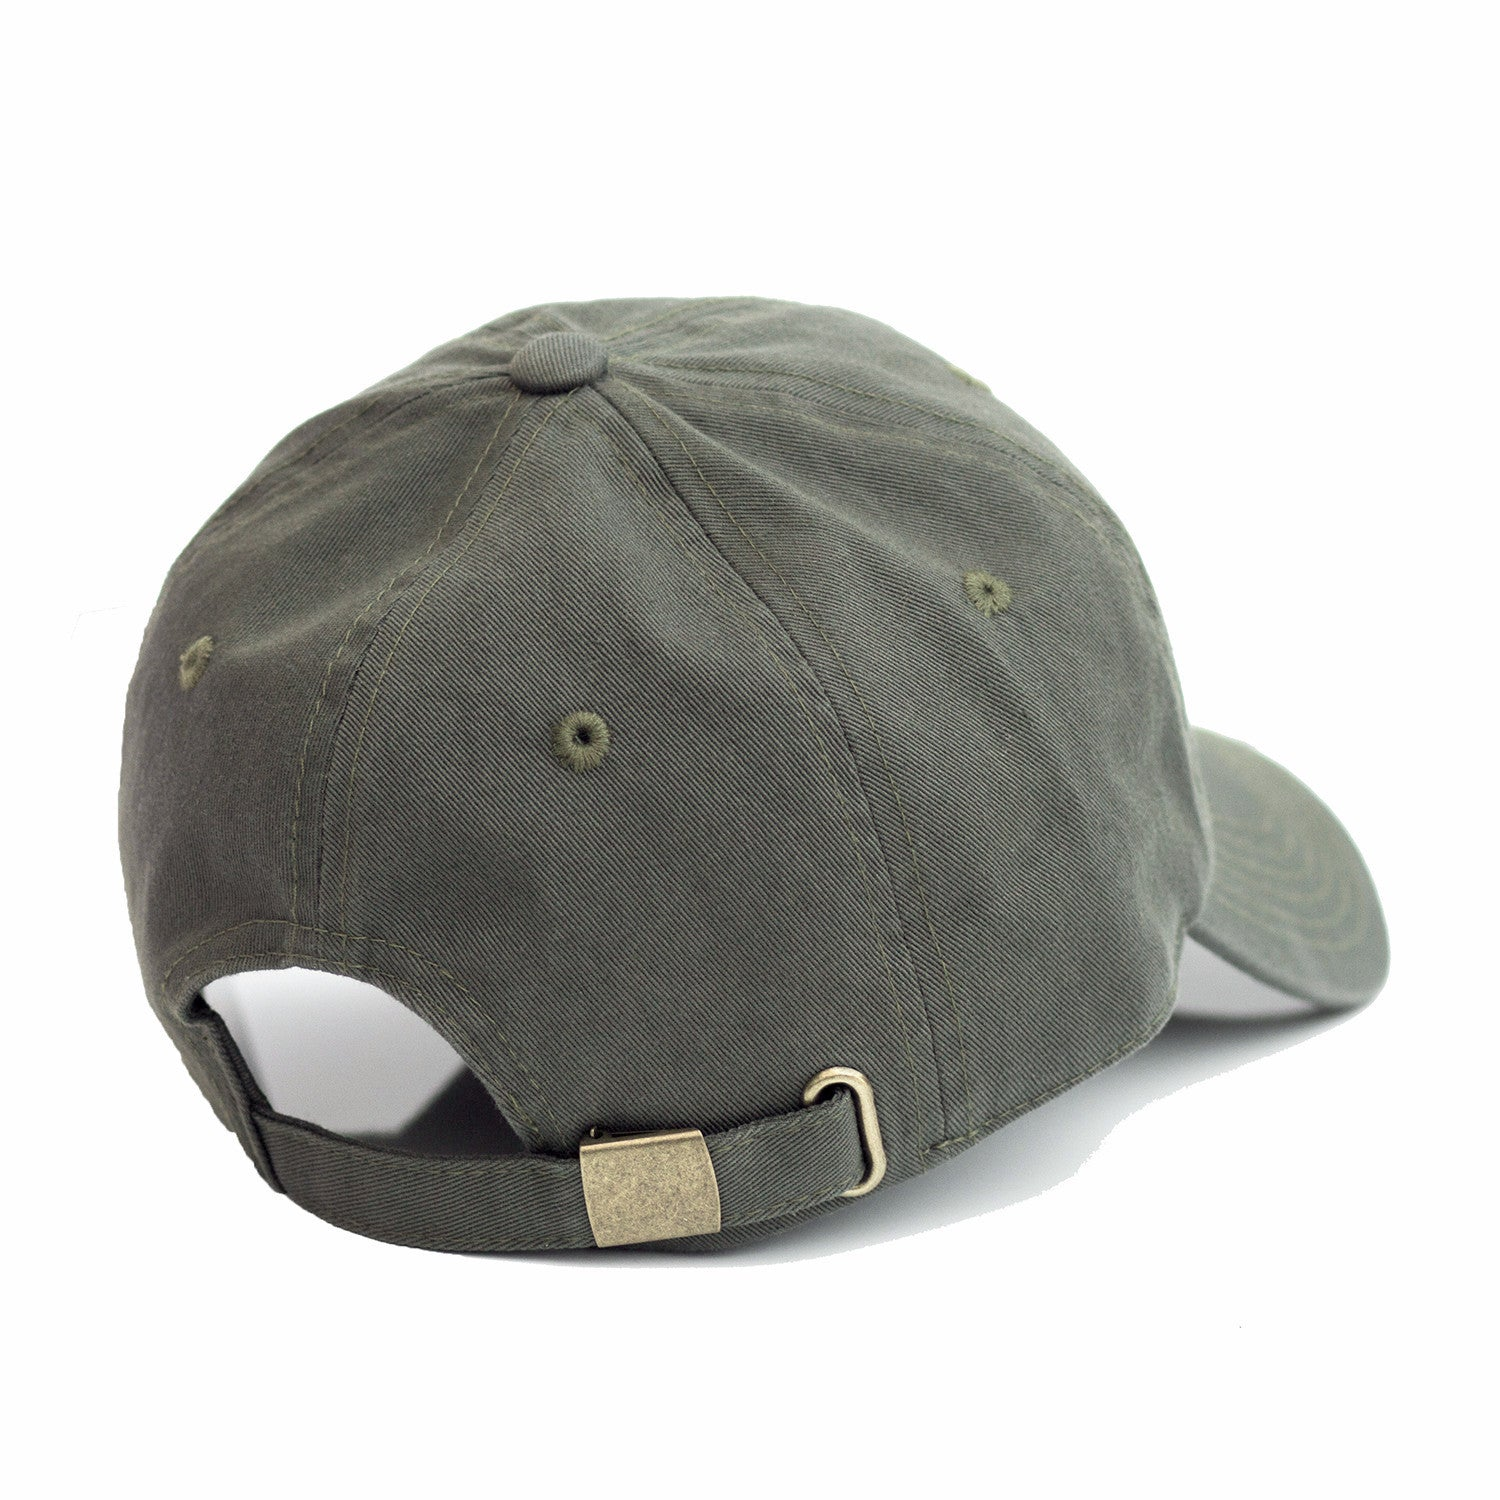 89a84c78e4e Chance The Rapper Dad Hat - Olive Green In Twilled Cotton ...